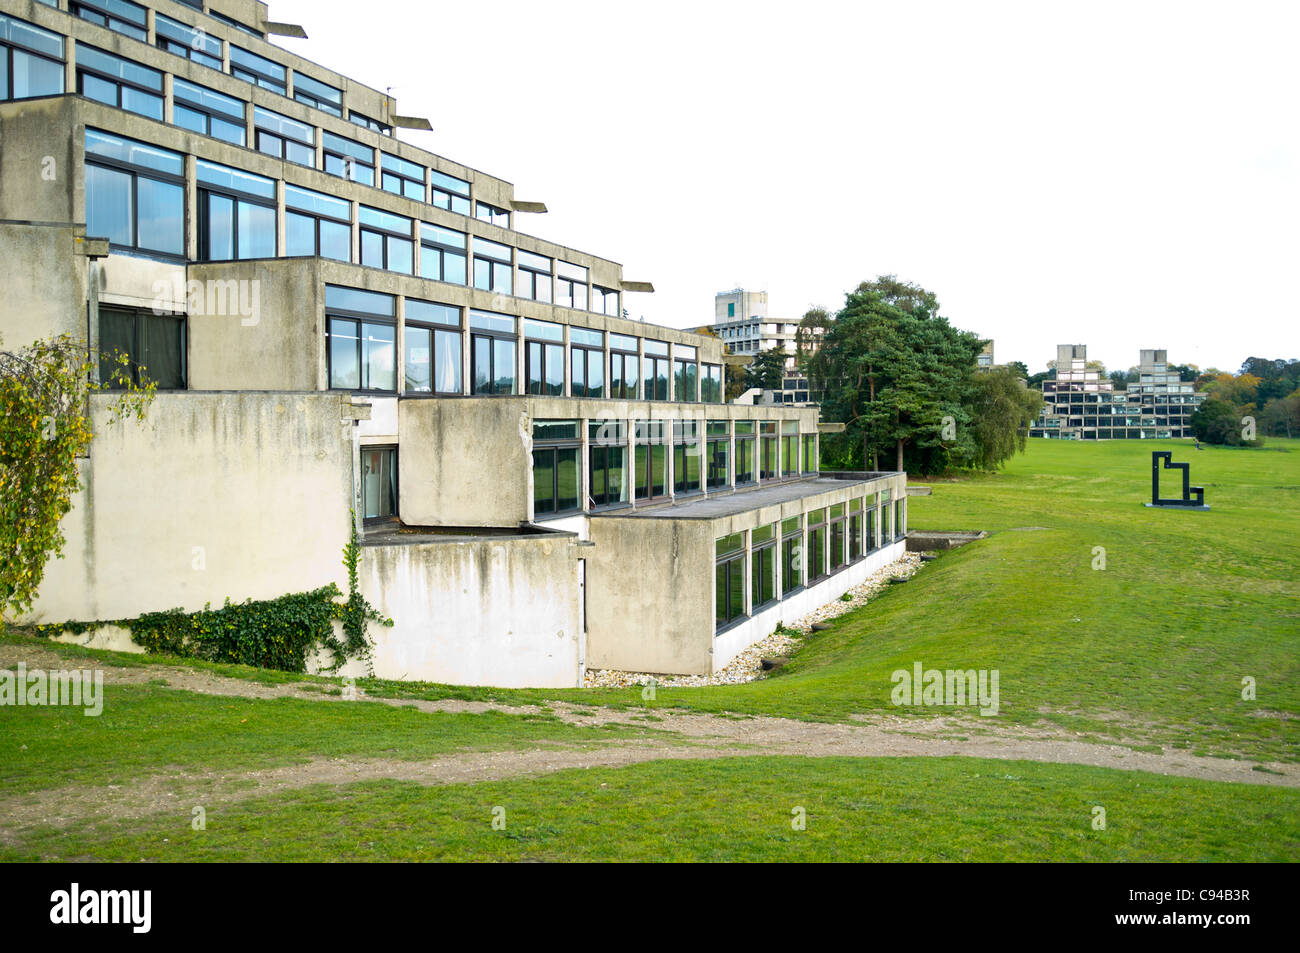 University of East Anglia student residences - Stock Image